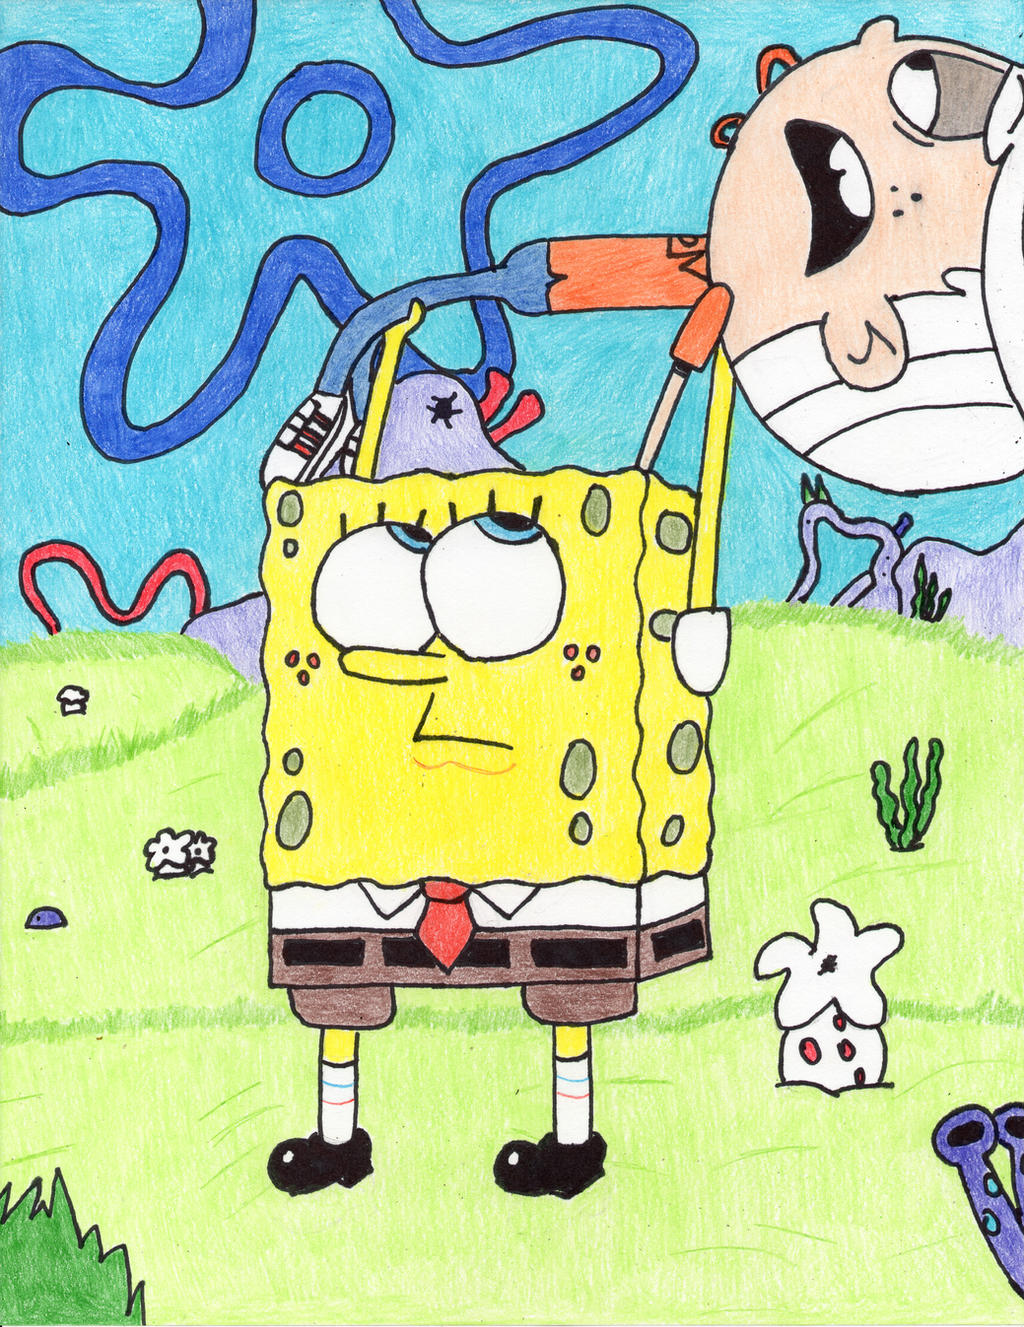 Crossovers on spongebobloversclub deviantart